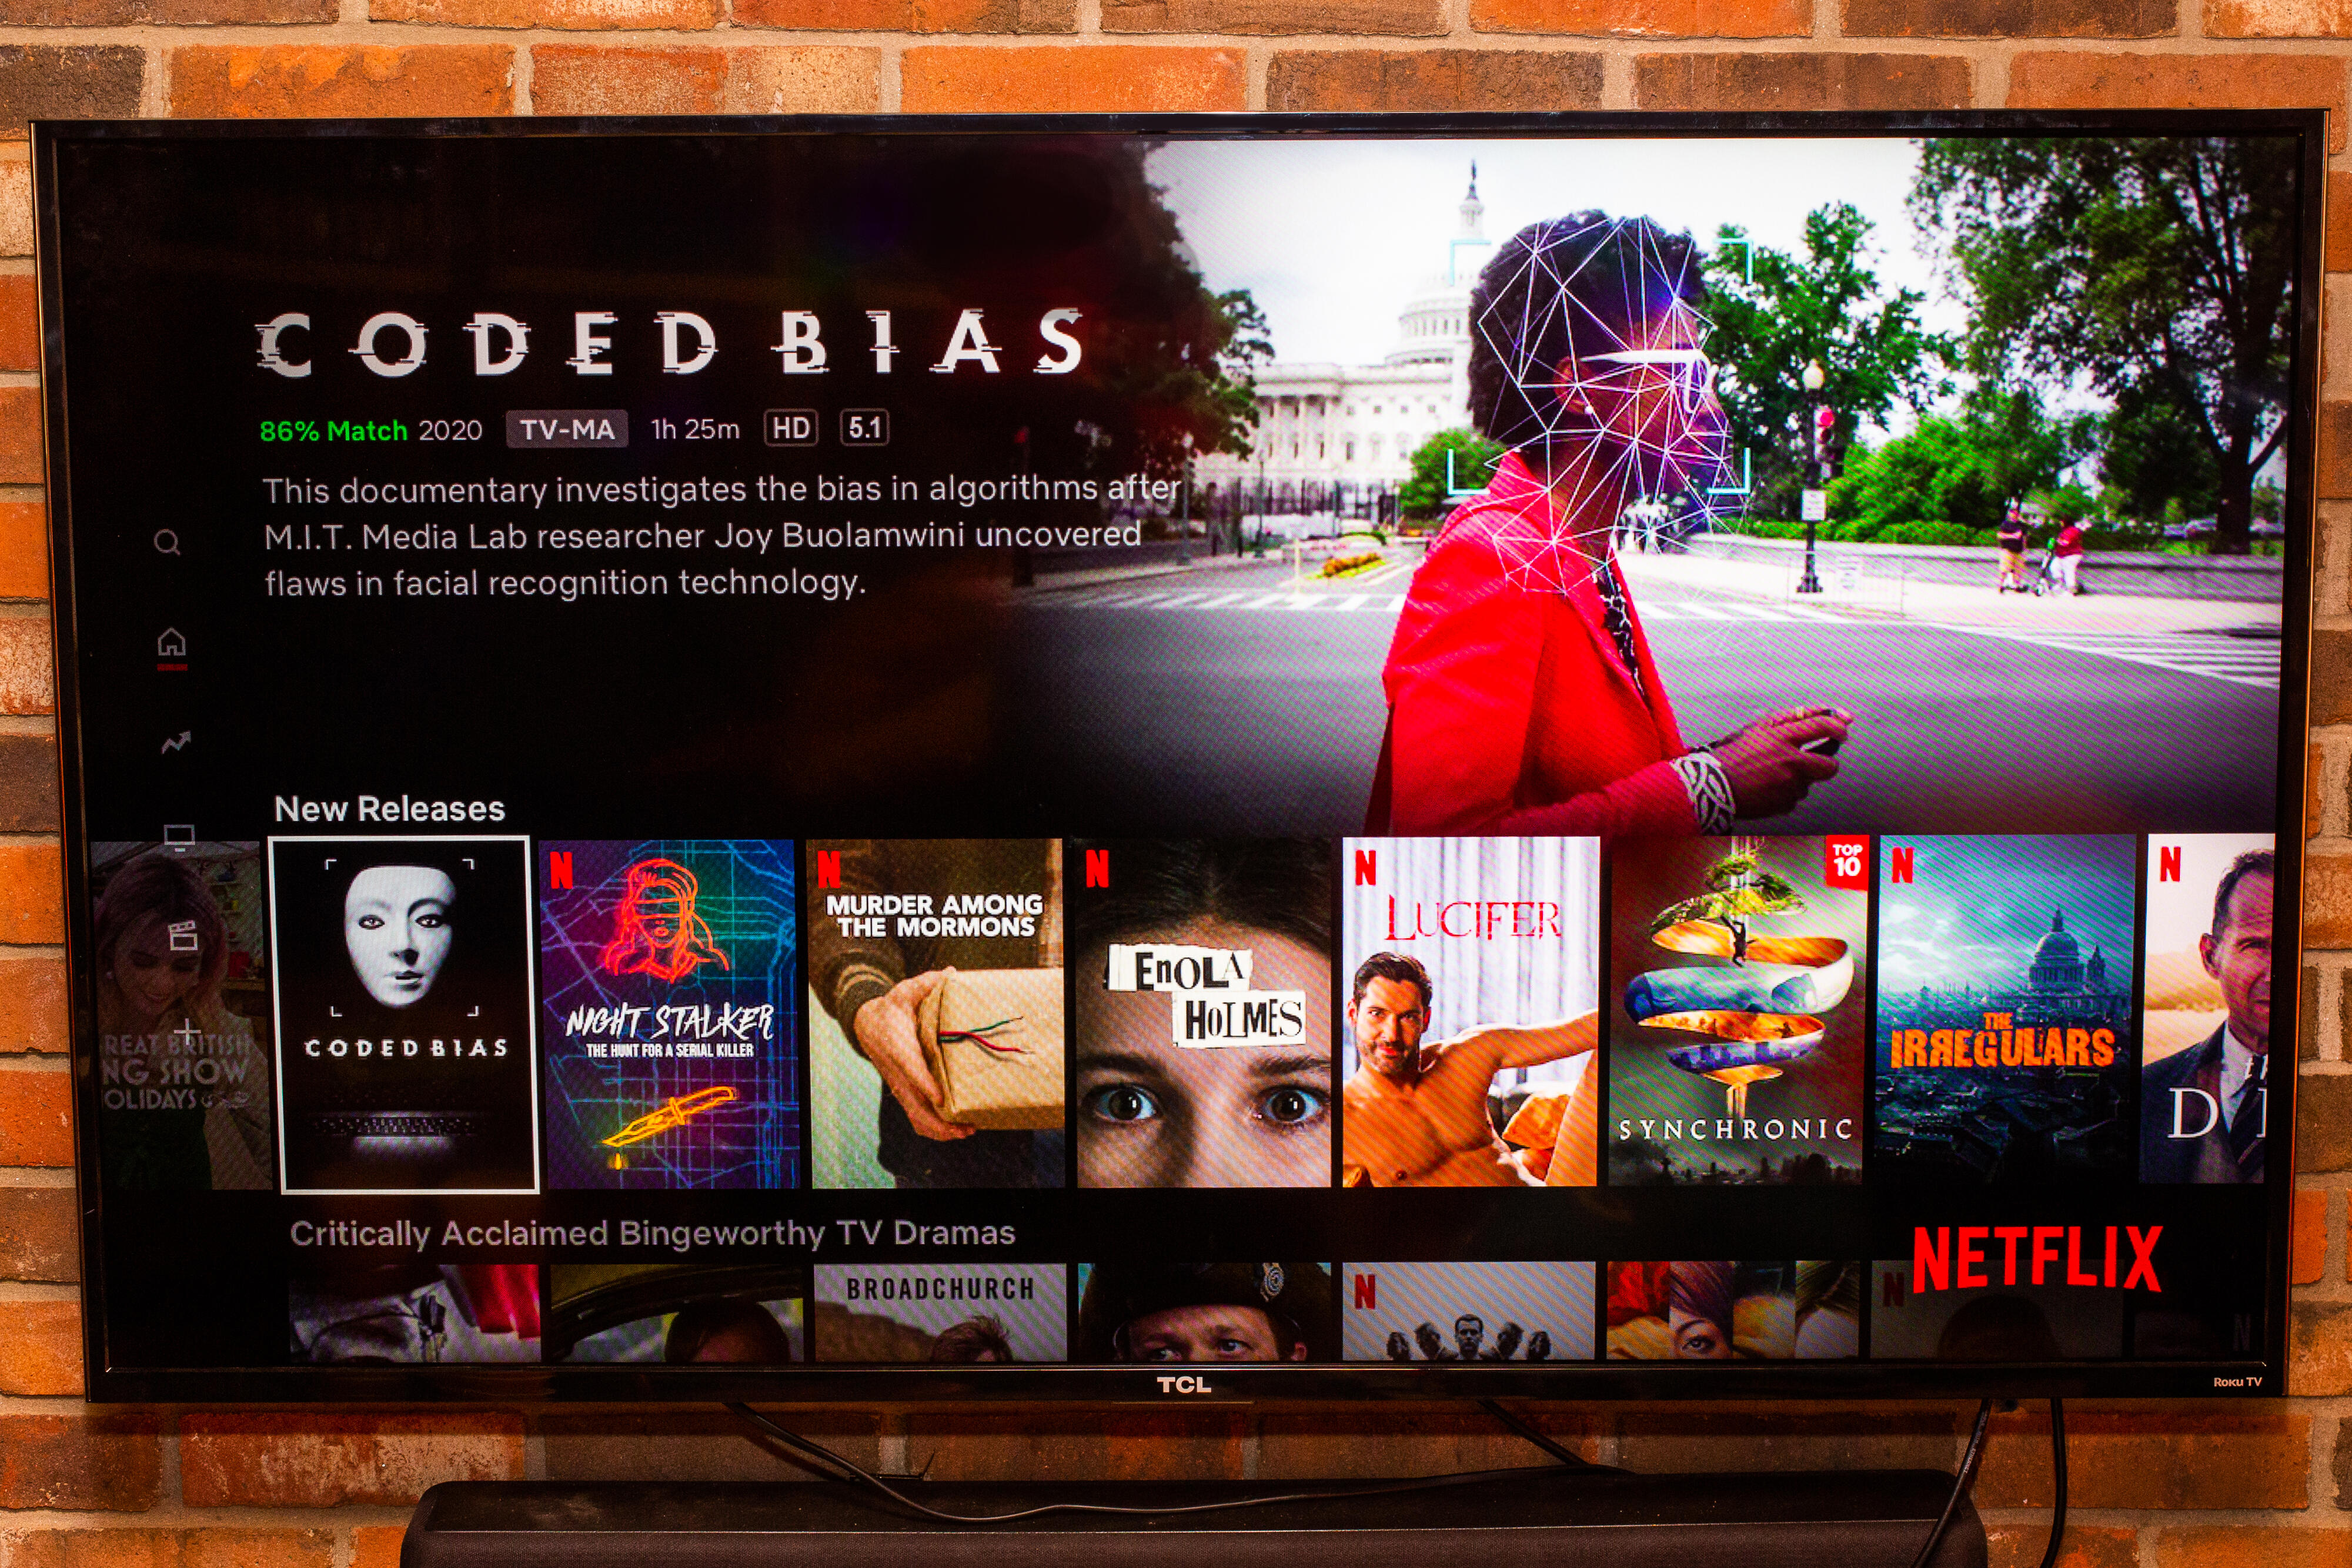 004-how-to-watch-netflix-on-your-tv-2021